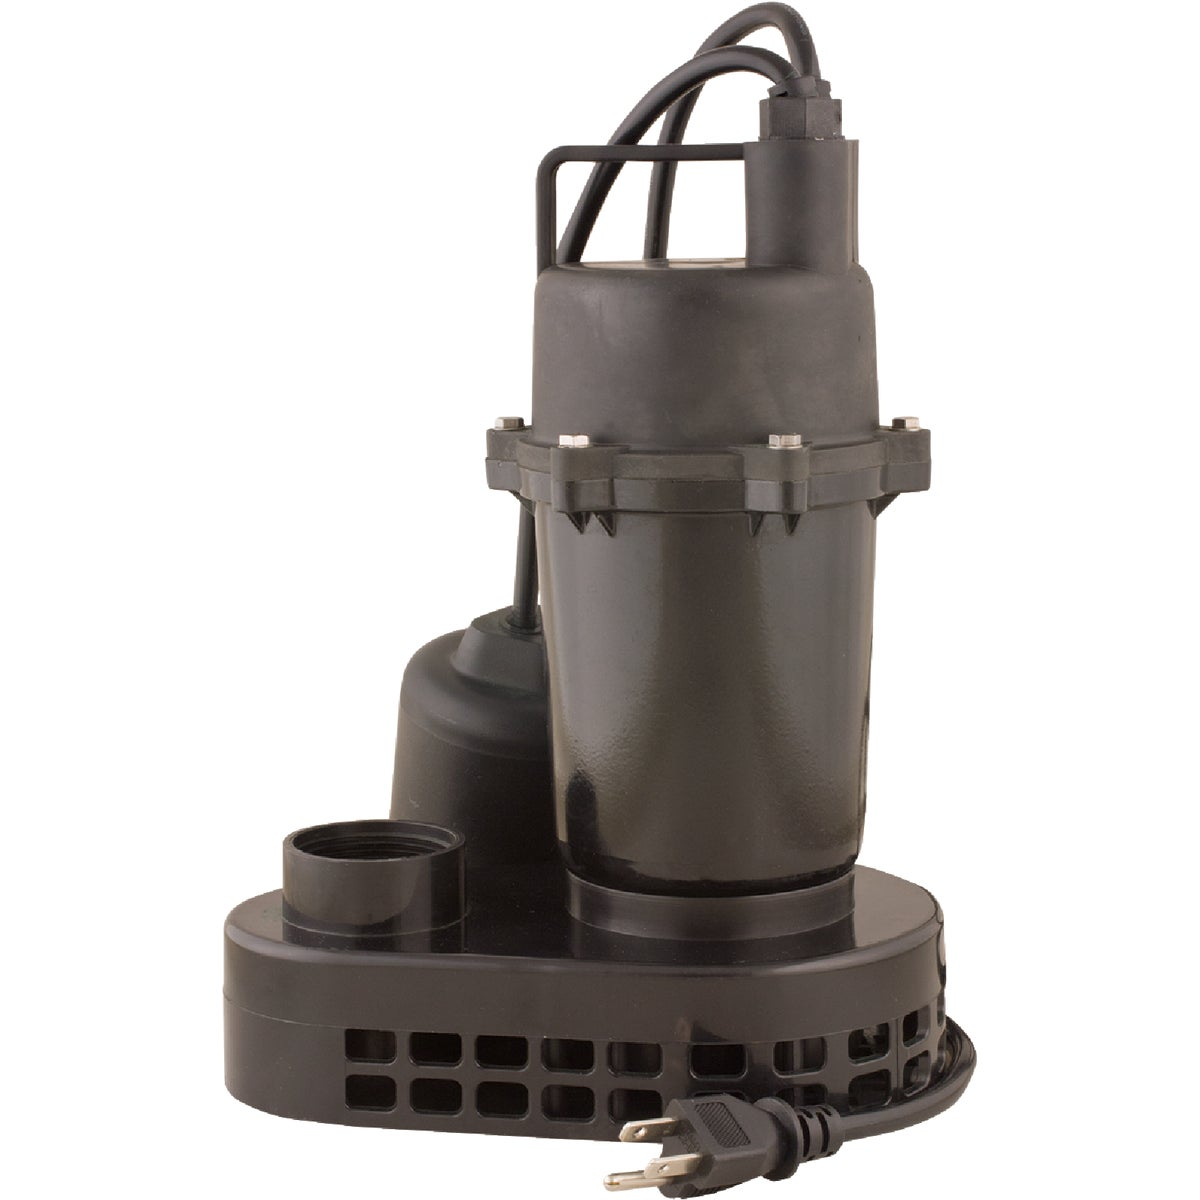 1/3HP PLASTIC SUMP PUMP - 3USPH by Star Water Systems